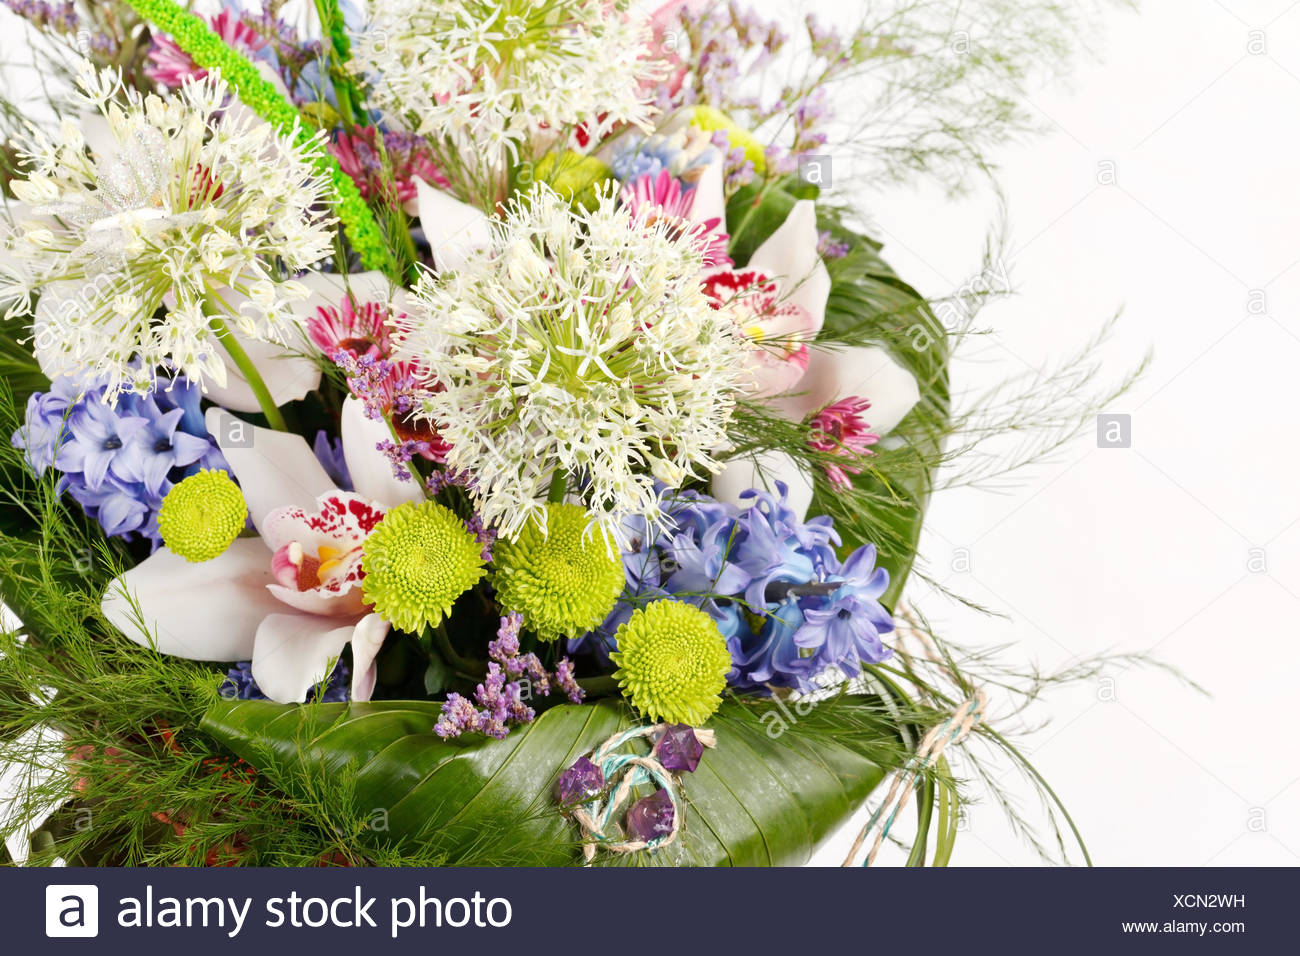 Beautiful Flowers In The Basket Stock Photo 283205037 Alamy